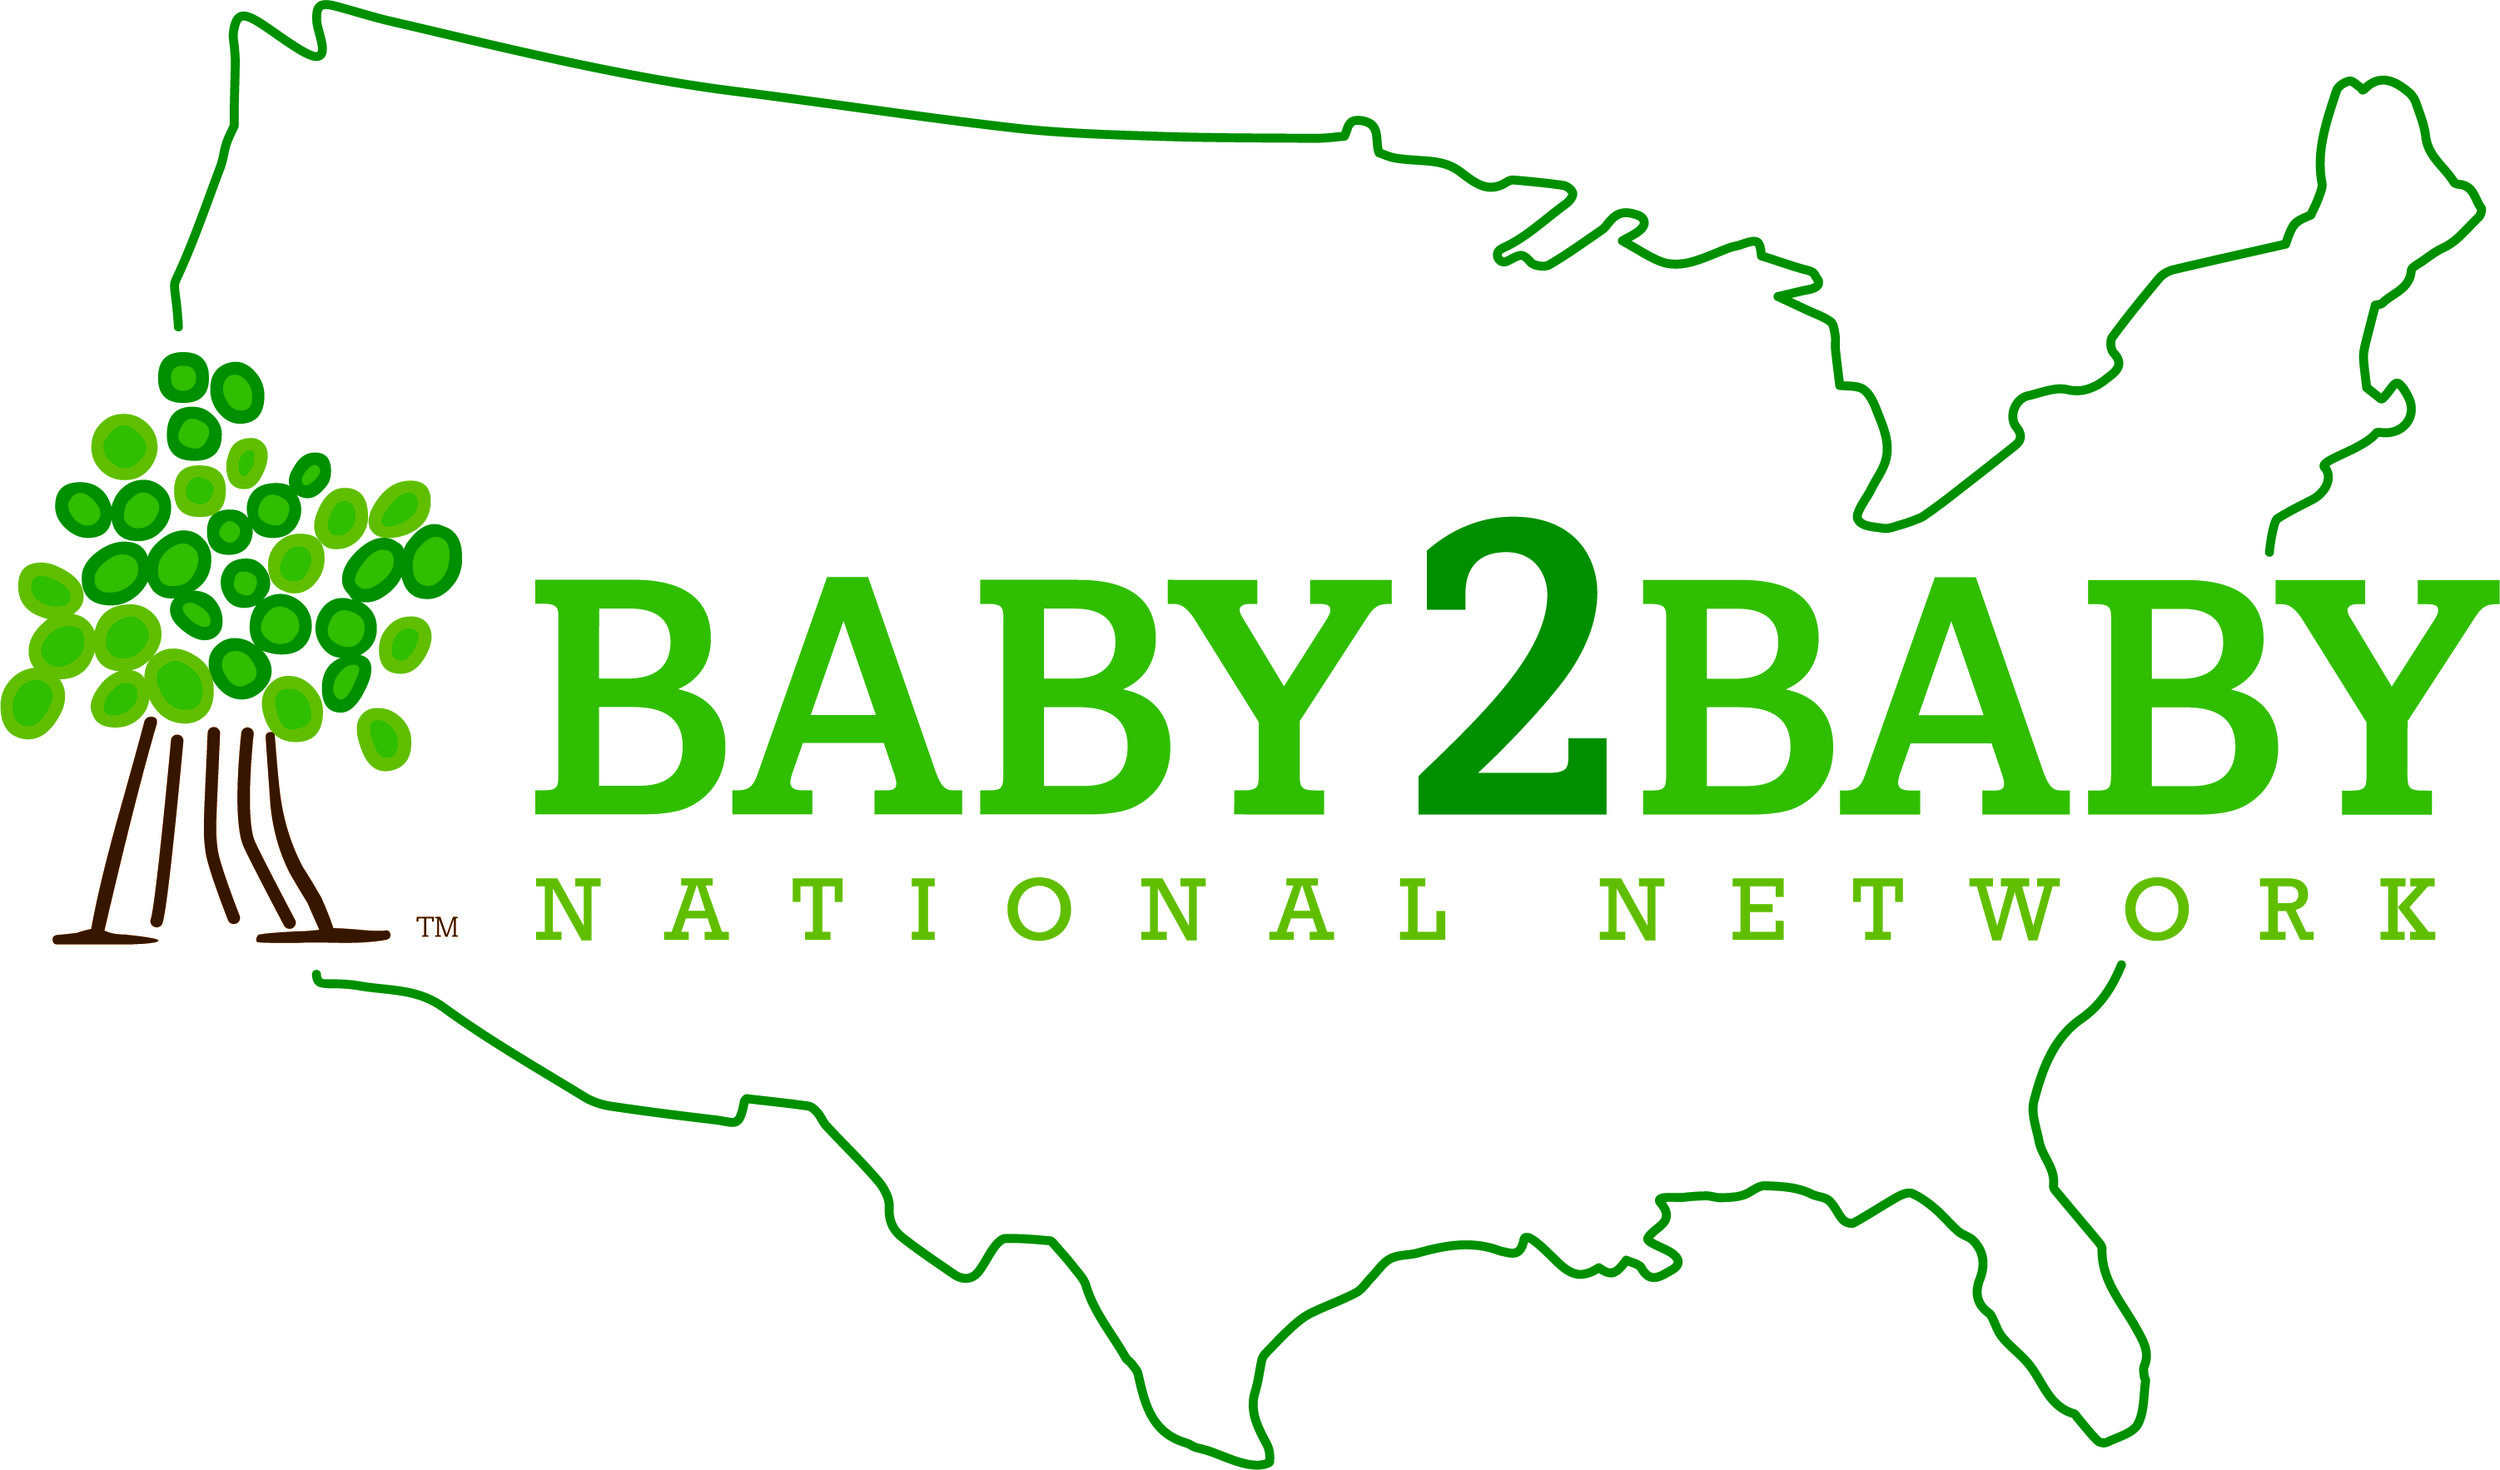 Baby2Baby National Network.jpg